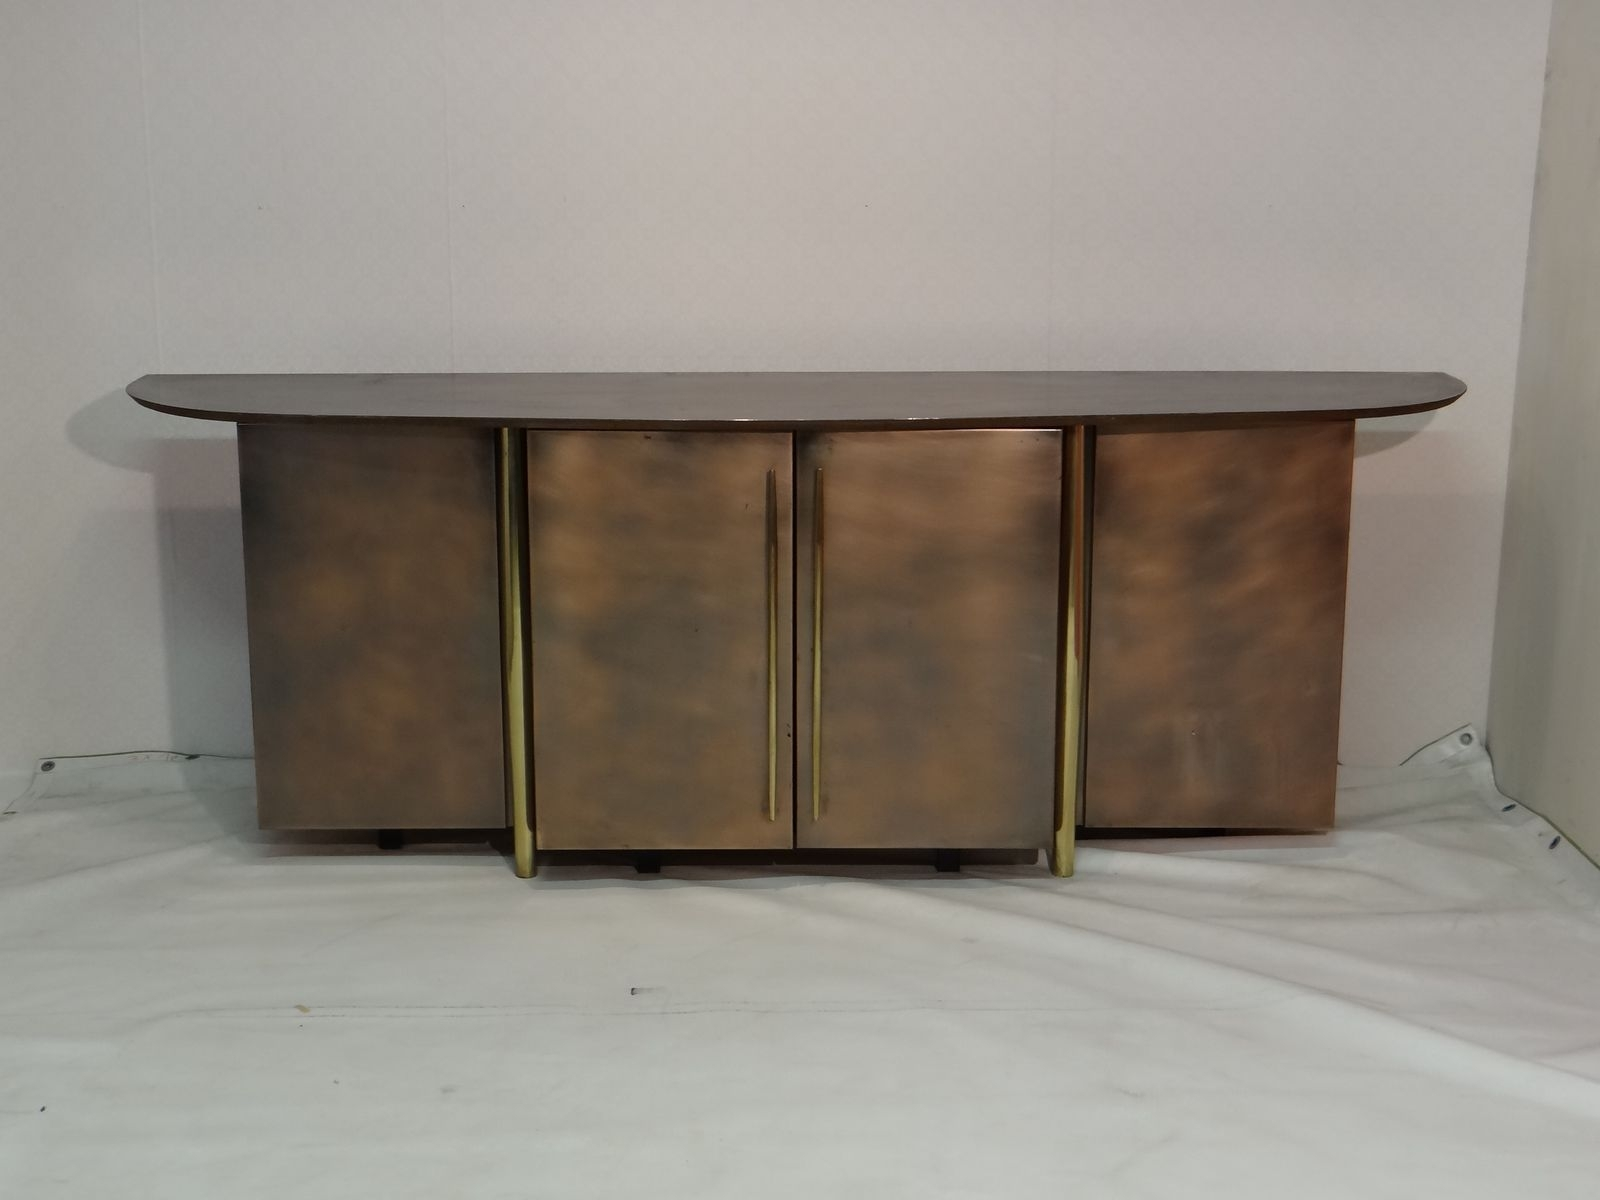 Vintage Brass Sideboard From Belgo Chrom For Sale At Pamono In Current Aged Brass Sideboards (View 6 of 20)